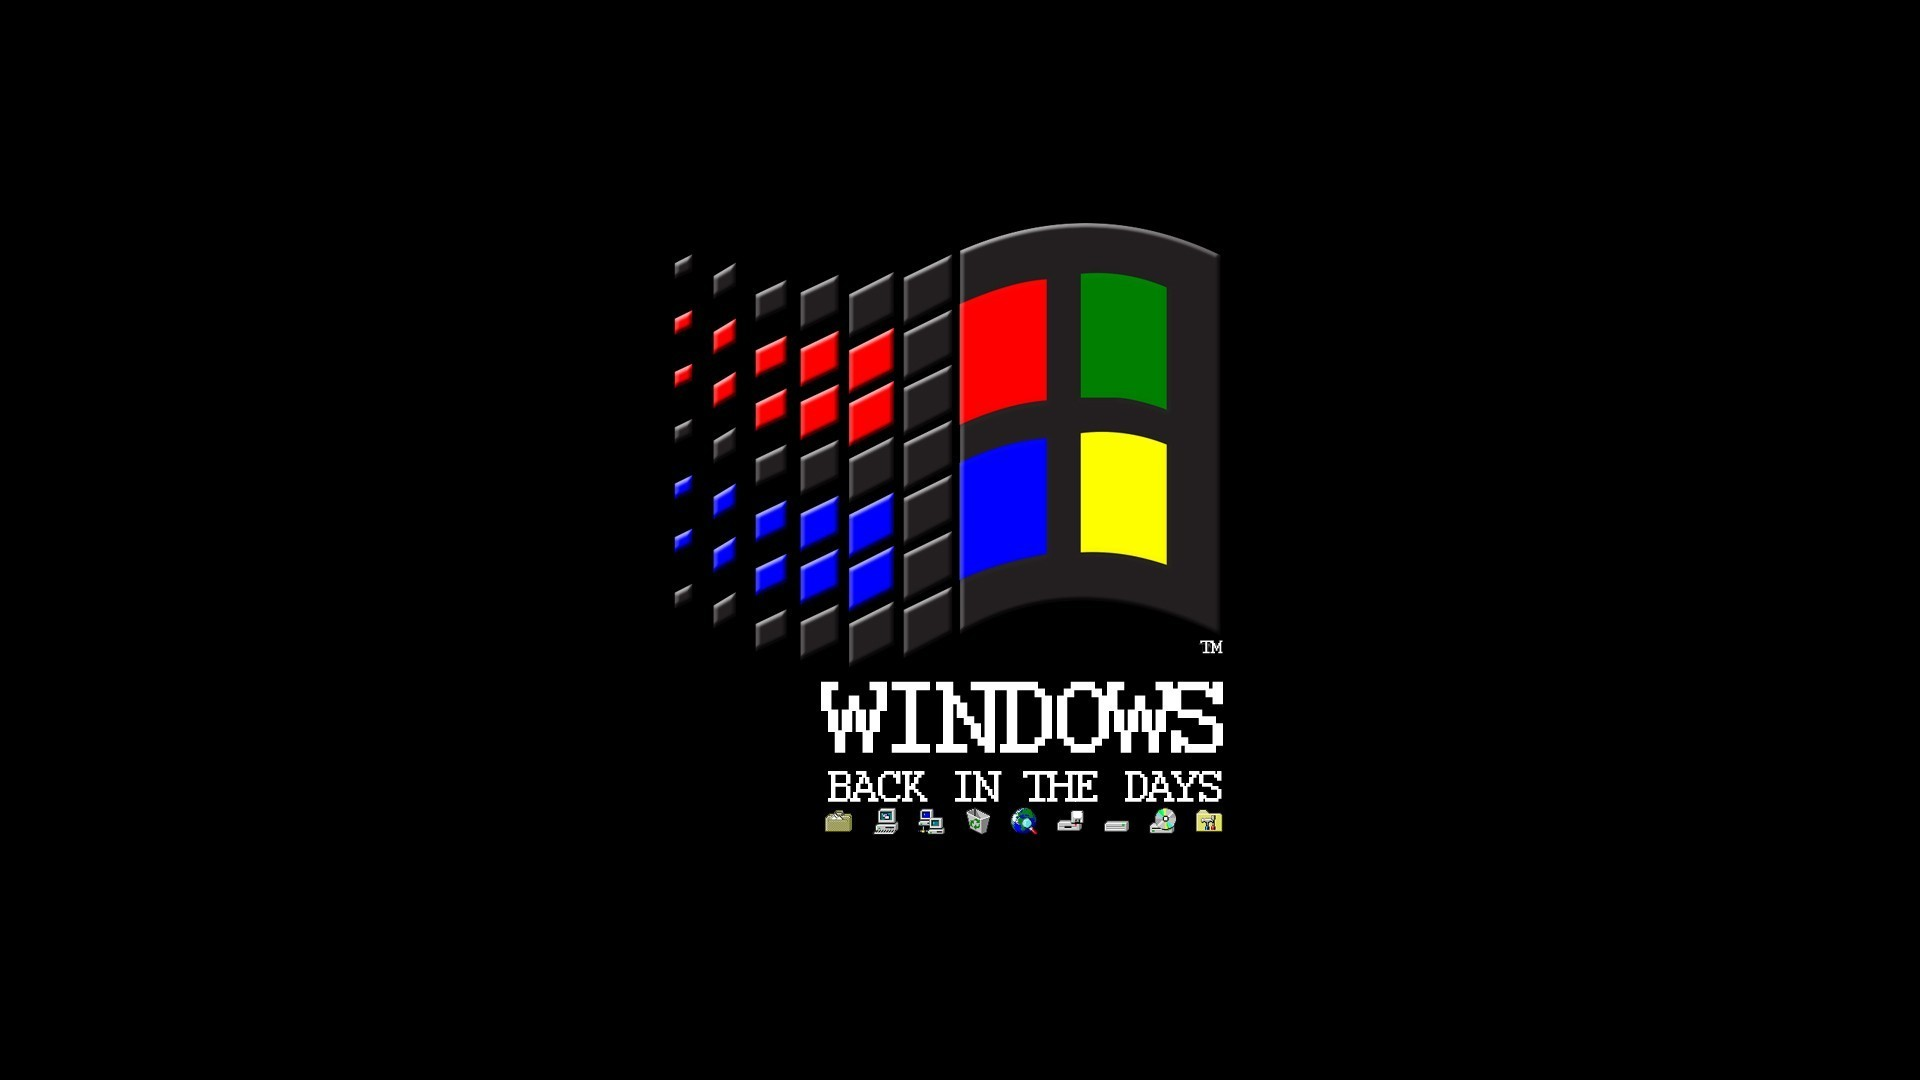 Windows Logo Wallpaper 71 Pictures